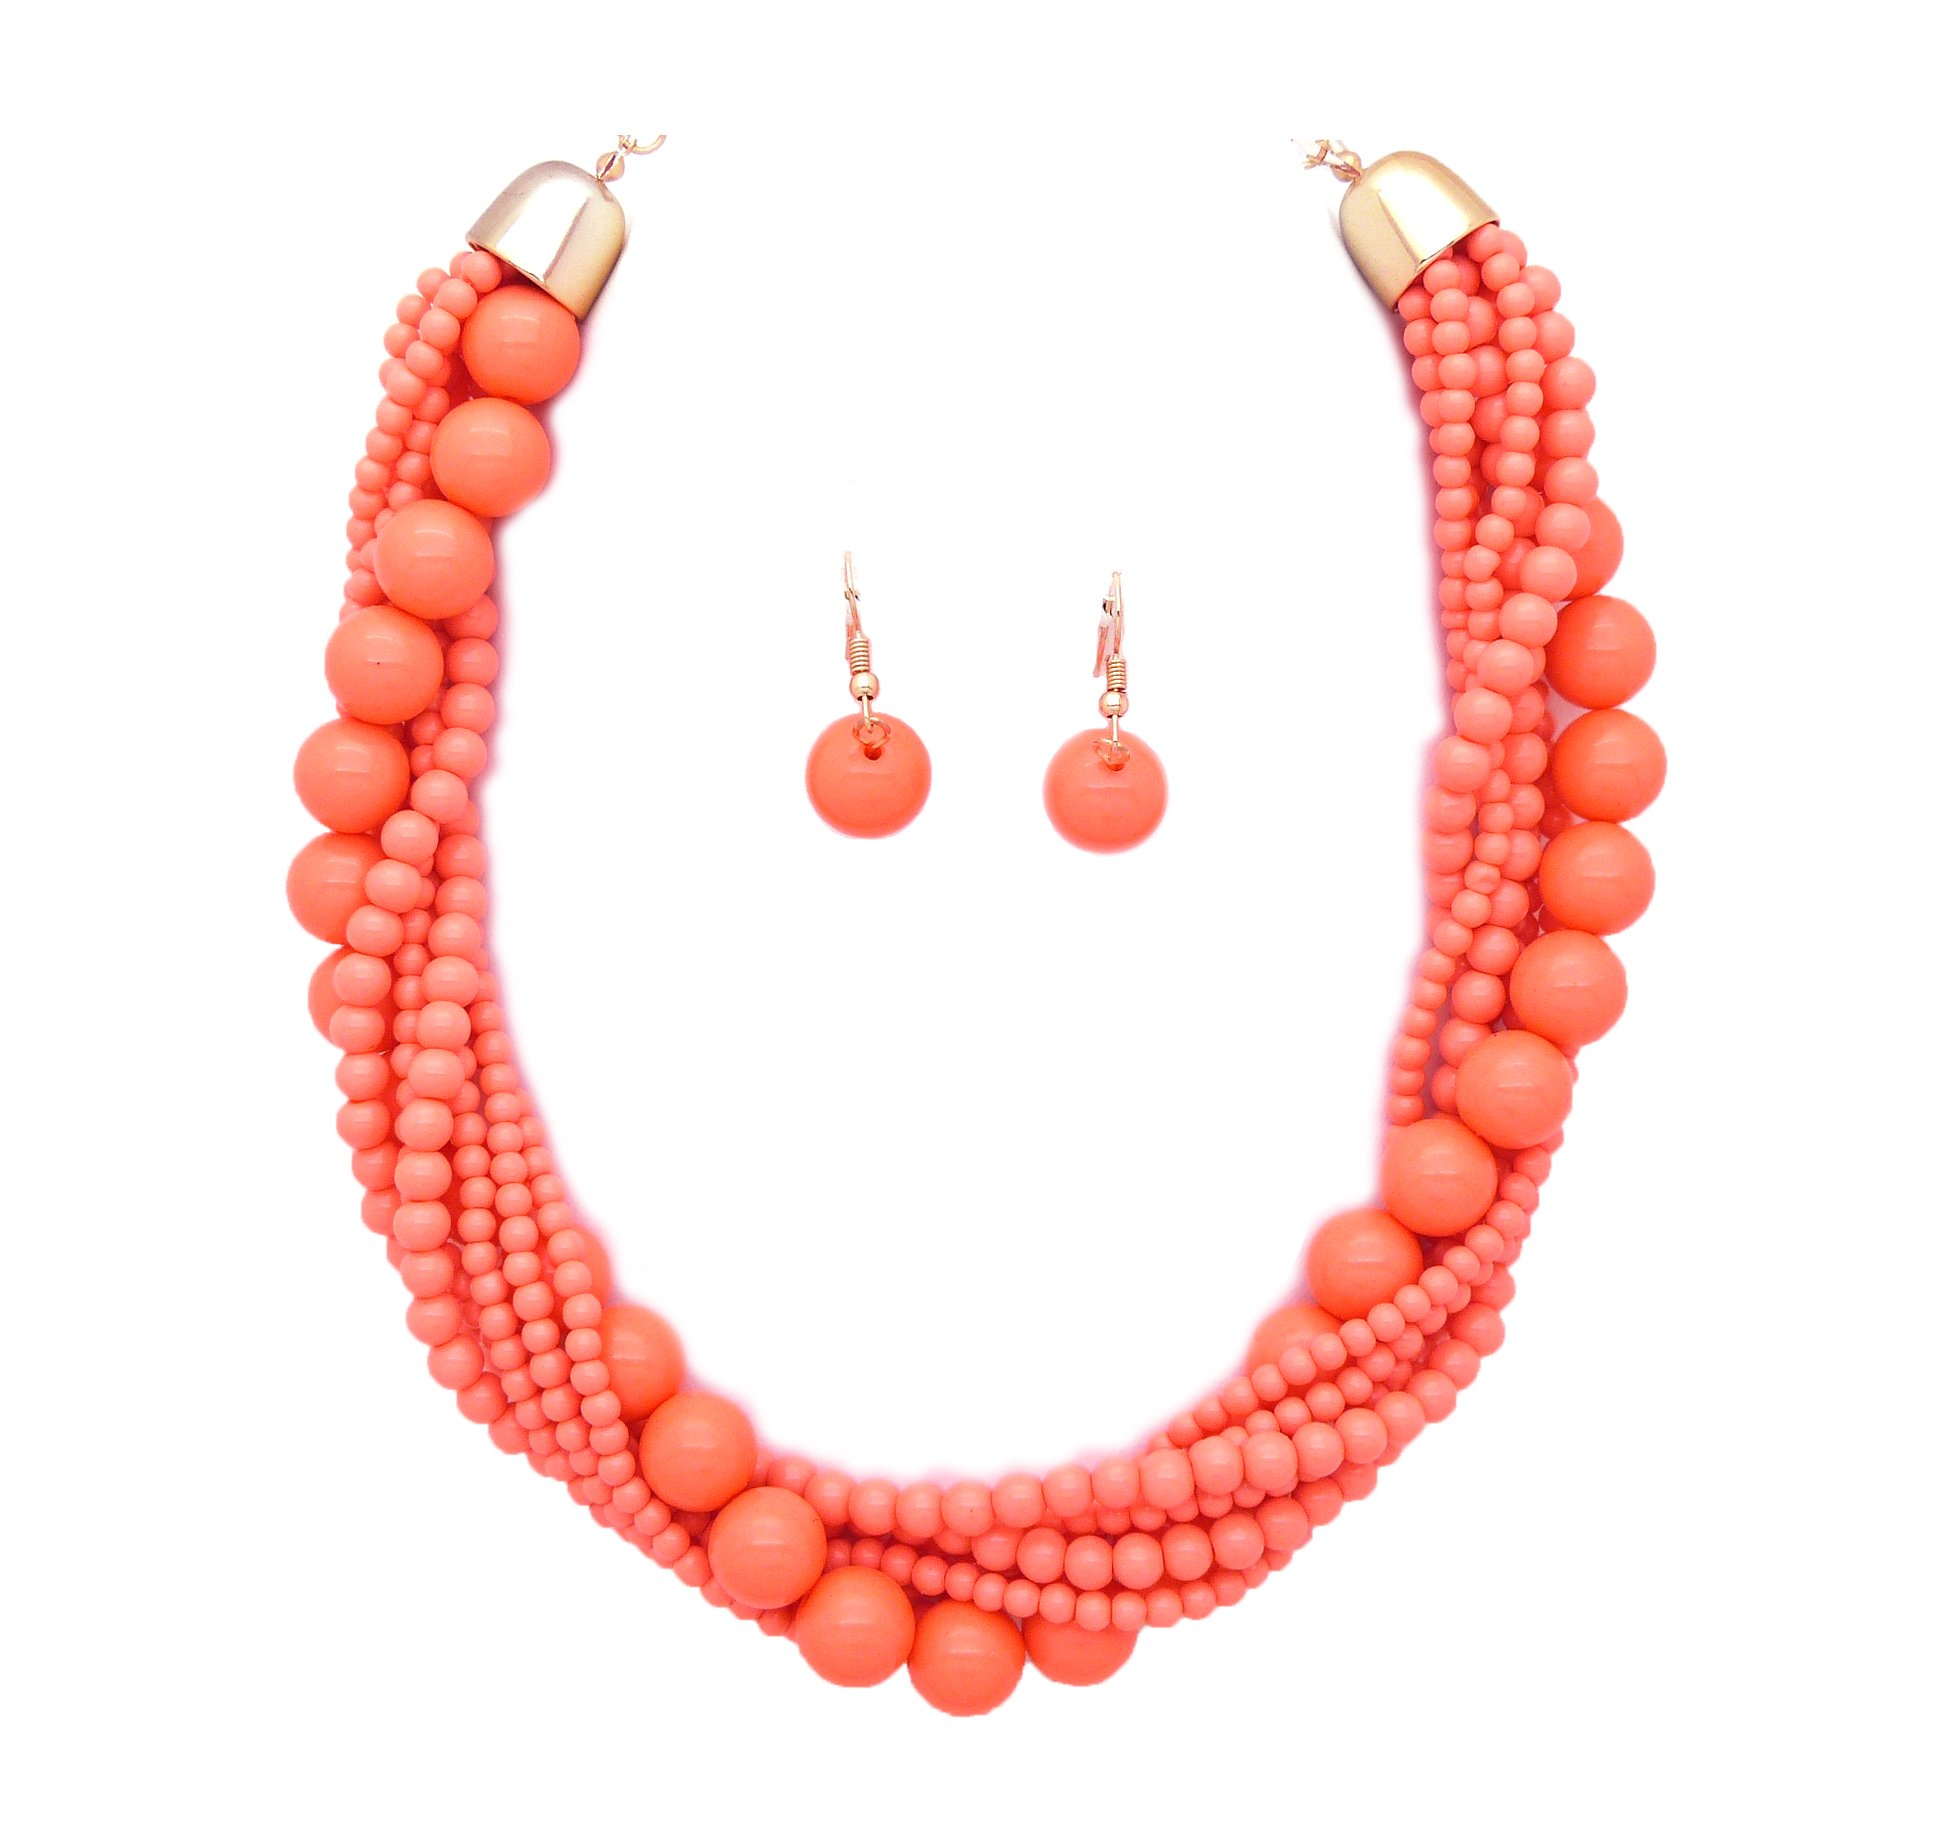 Fashion 21 Women's Twisted Multi-Strand Simulated Pearl, Acrylic Ball Statement Necklace and Earrings Set (Coral - Acrylic Ball)